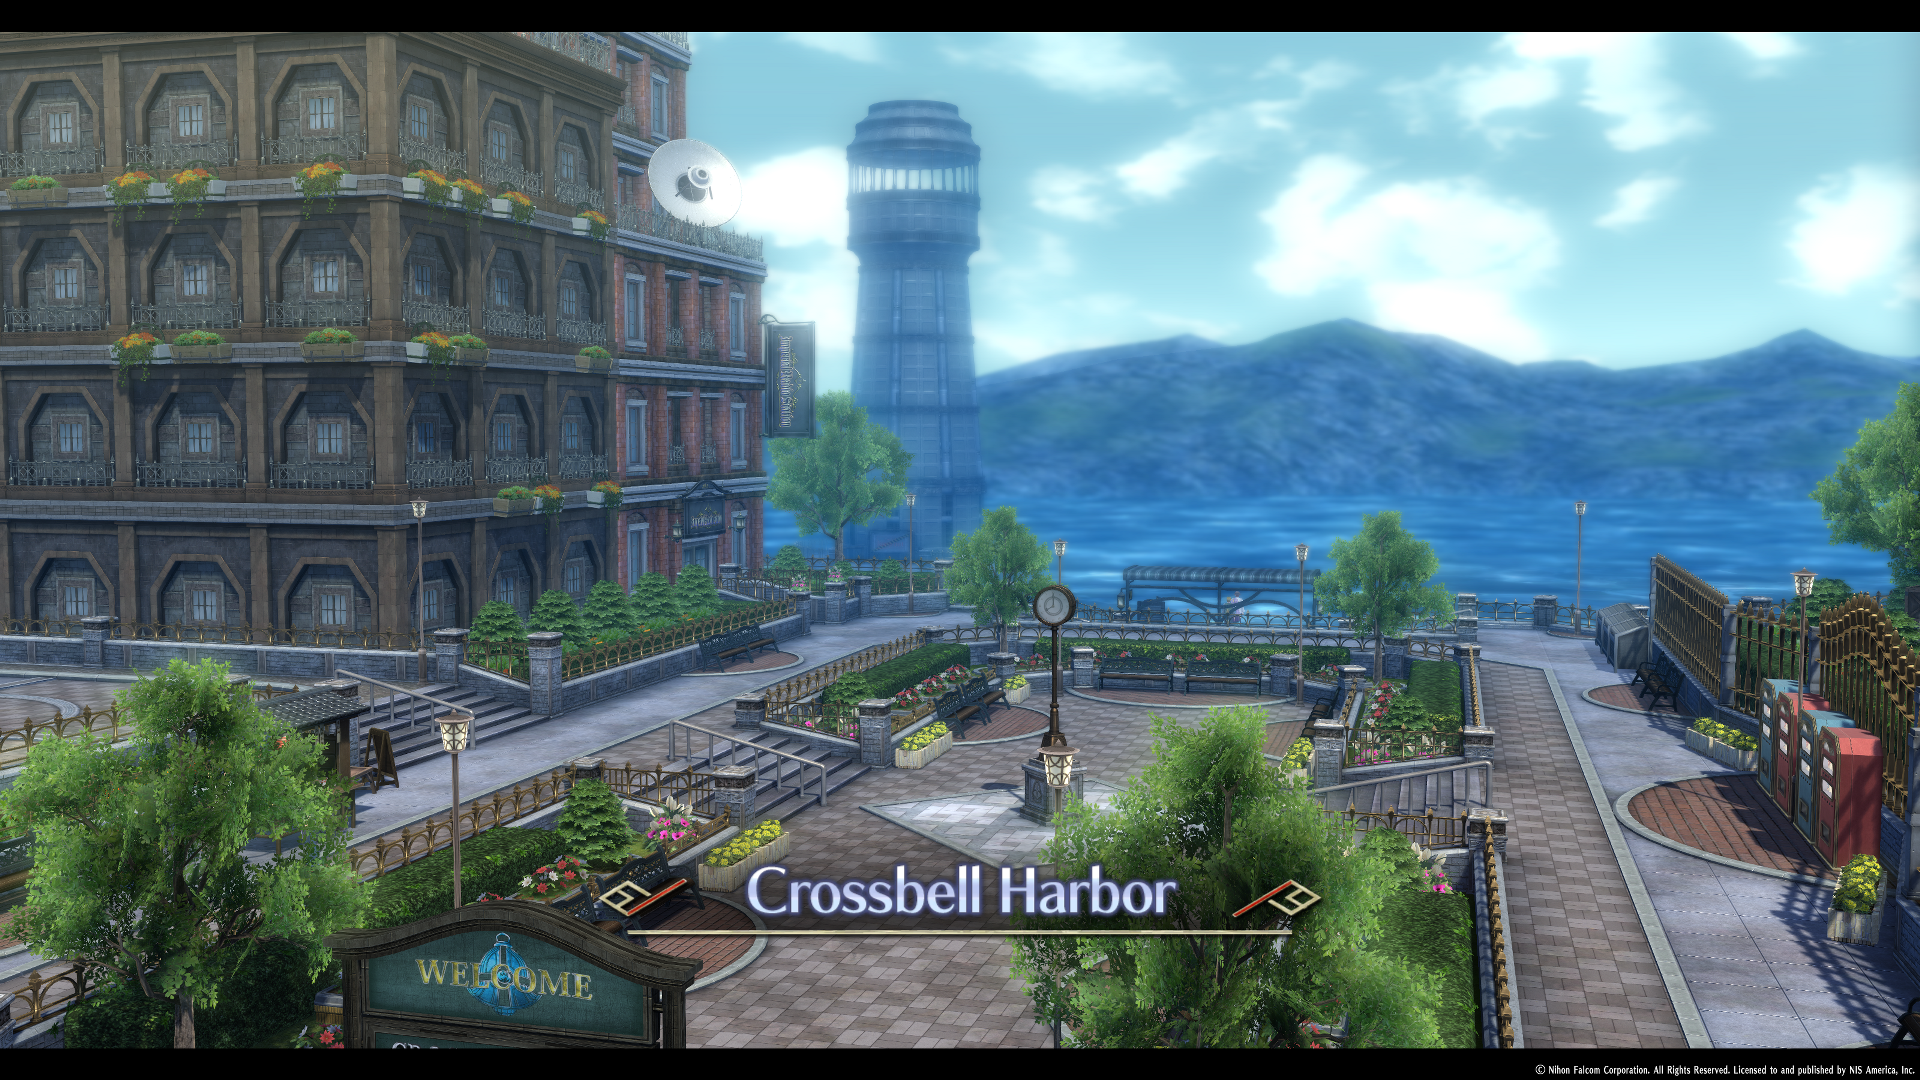 Crossbell City/Harbor District